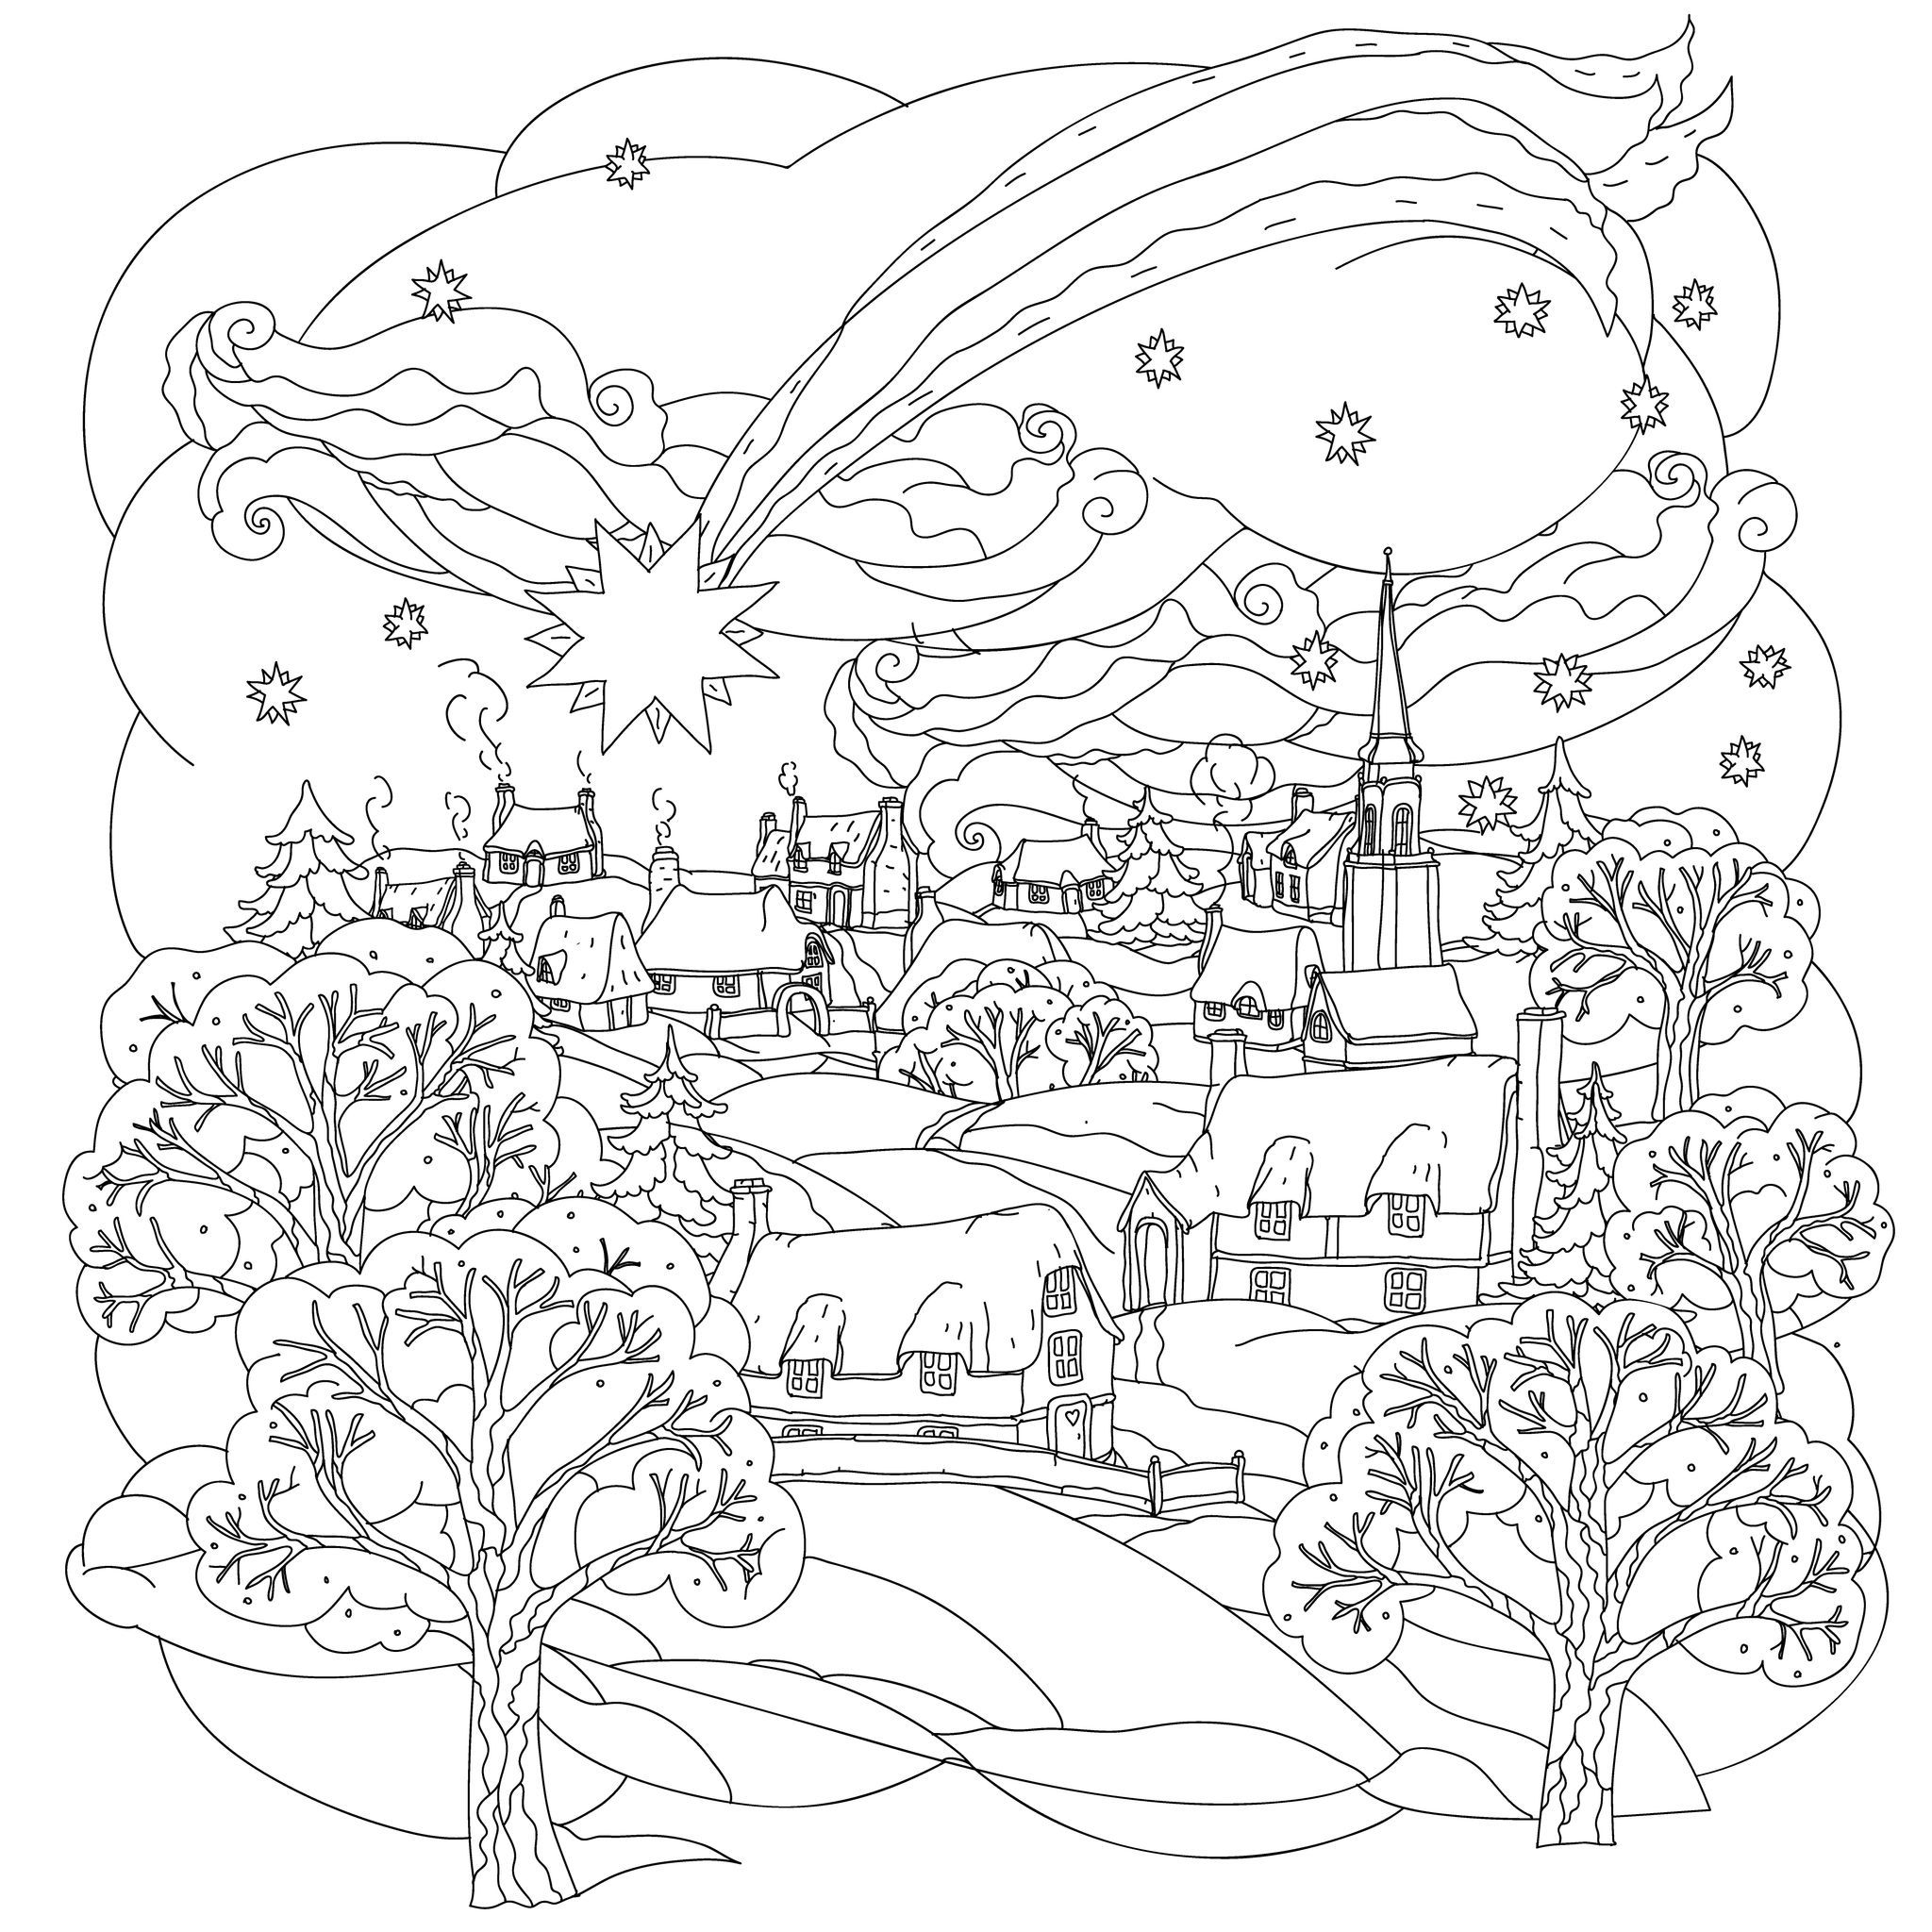 Christmas Star Flies Over Winter Village A Beautiful And Simple Xmas Coloring Page From The Gallery Events